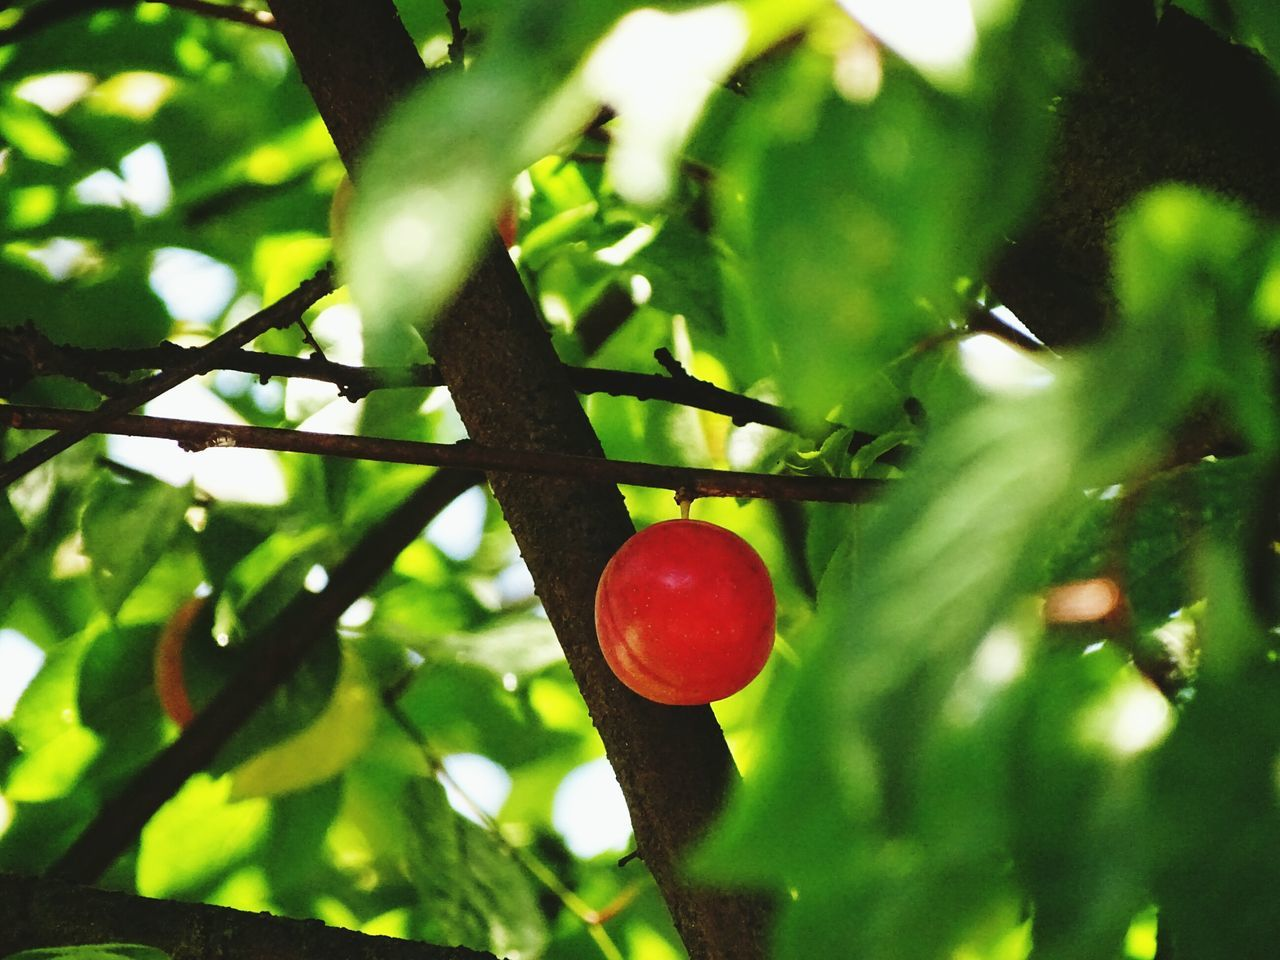 tree, growth, red, fruit, food and drink, food, nature, green color, outdoors, day, branch, hanging, no people, close-up, healthy eating, agriculture, freshness, beauty in nature